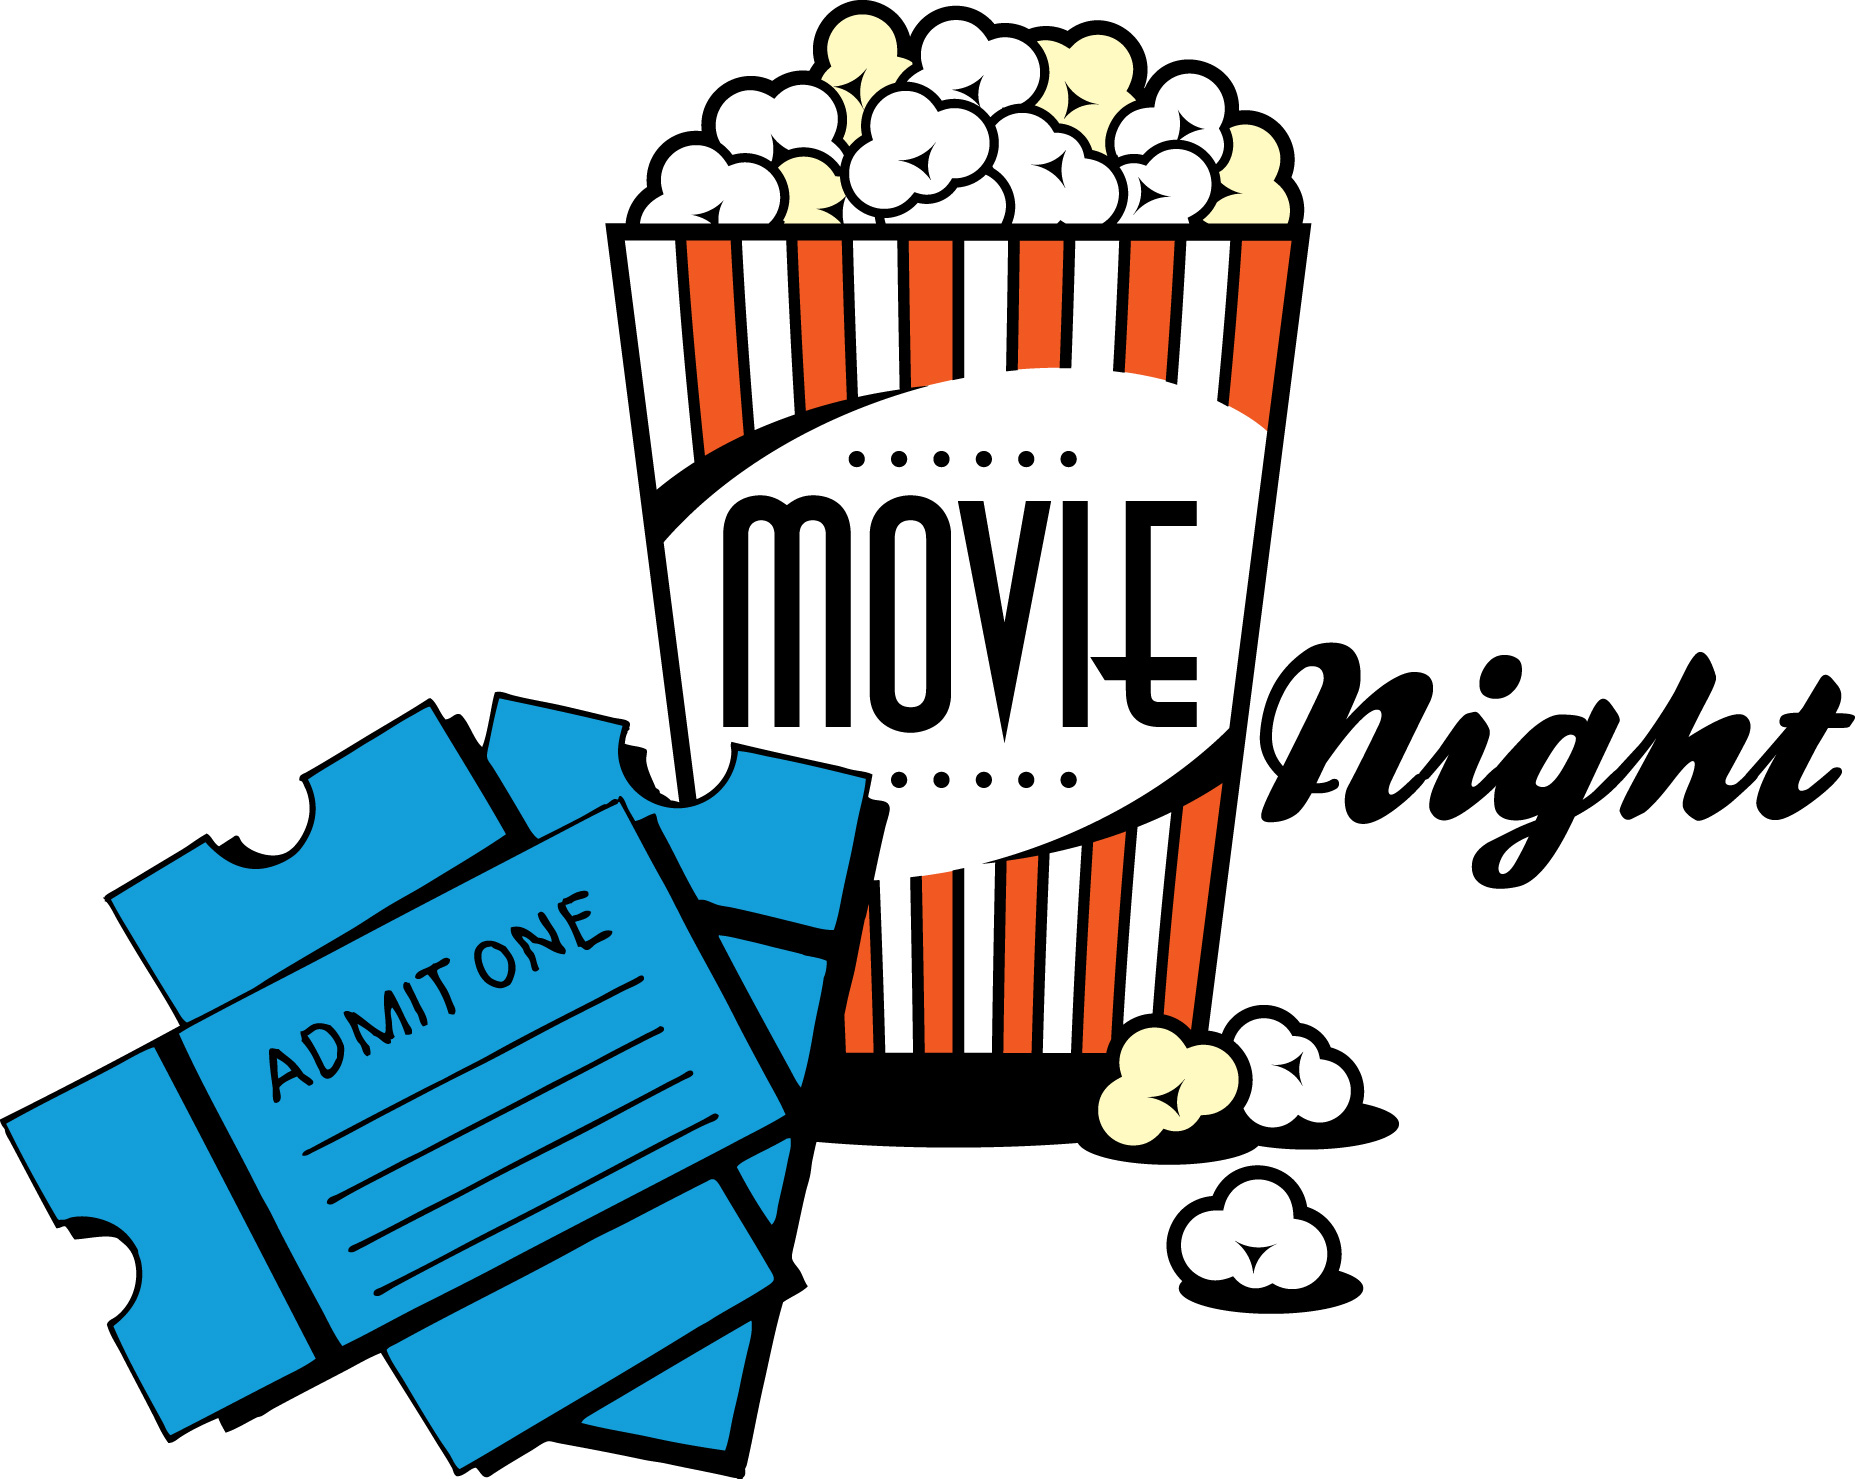 Movie clipart #11, Download drawings